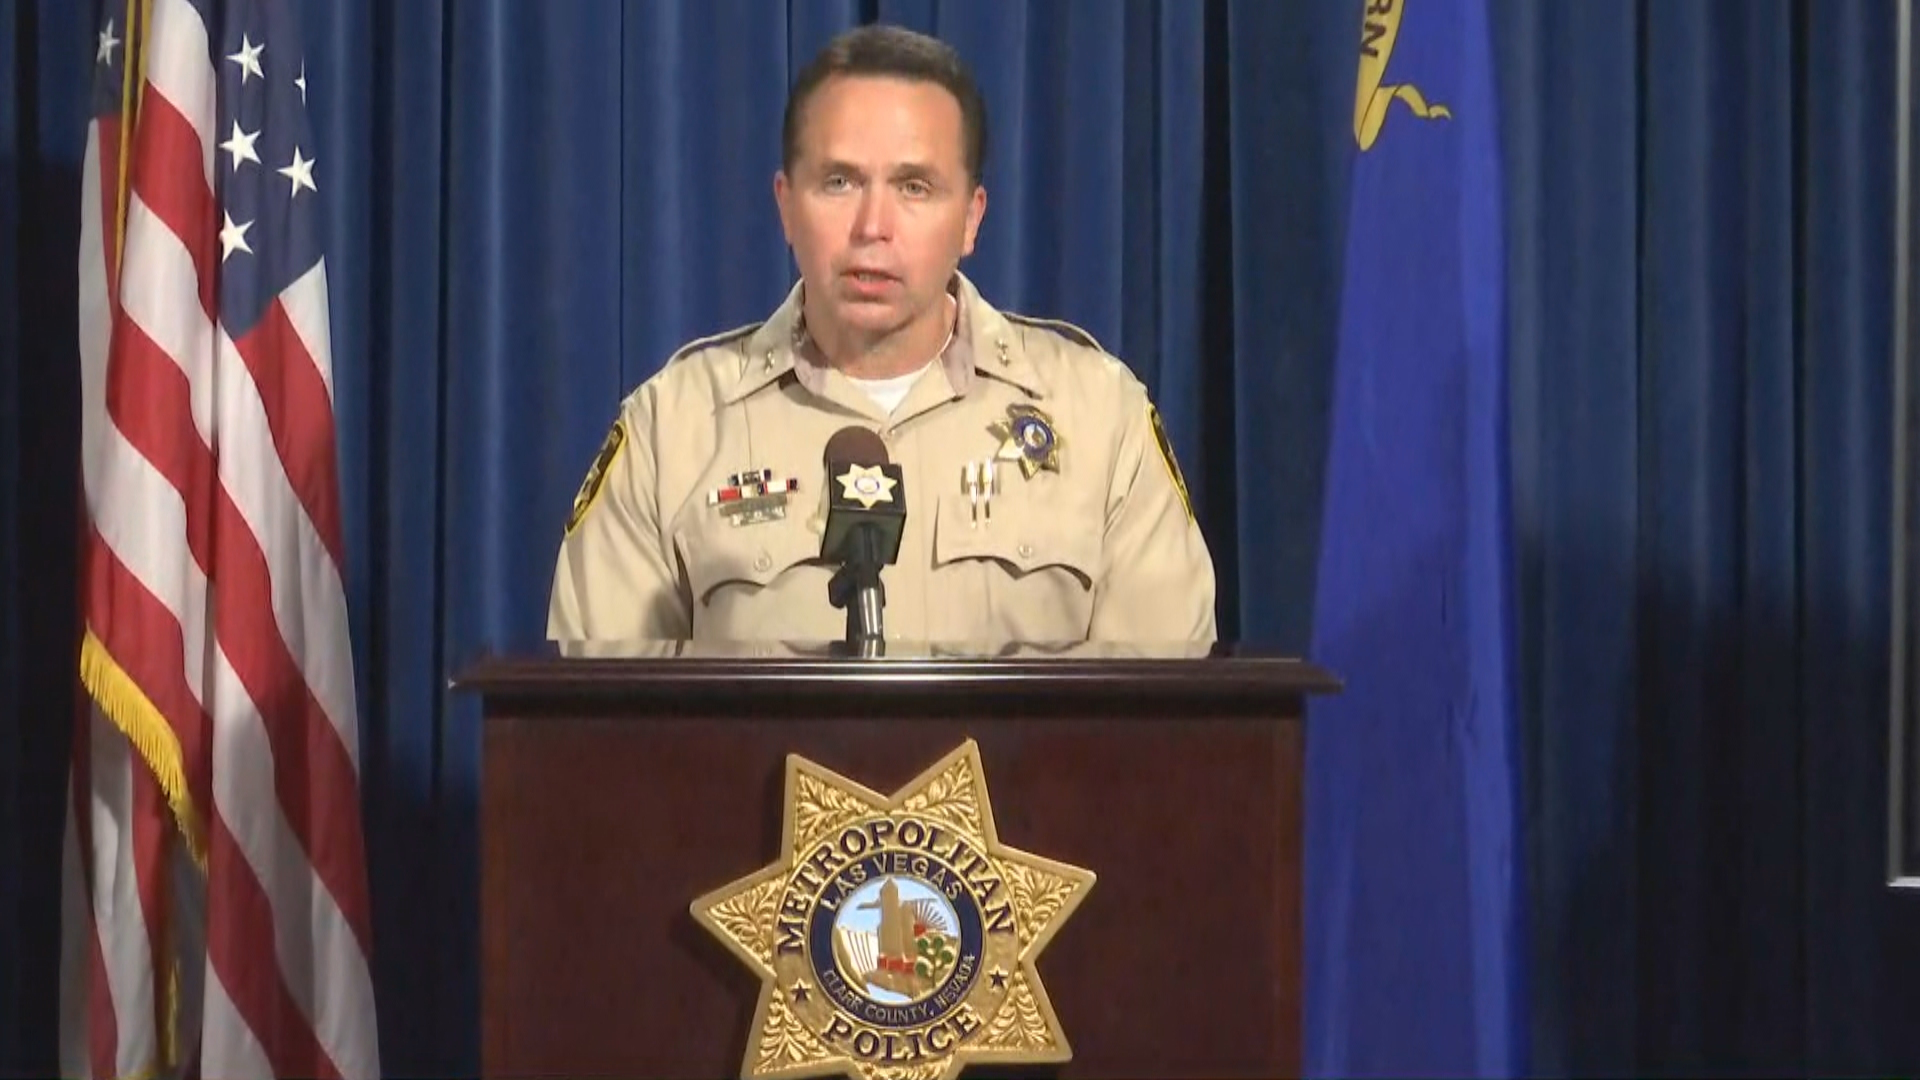 Assistant Sheriff Tom Roberts of the Las Vegas Metropolitan Police Department provides details Tuesday, November 14, 2017, of a deadly officer-involved shooting that occurred Saturday, Nov. 11. (KSNV)